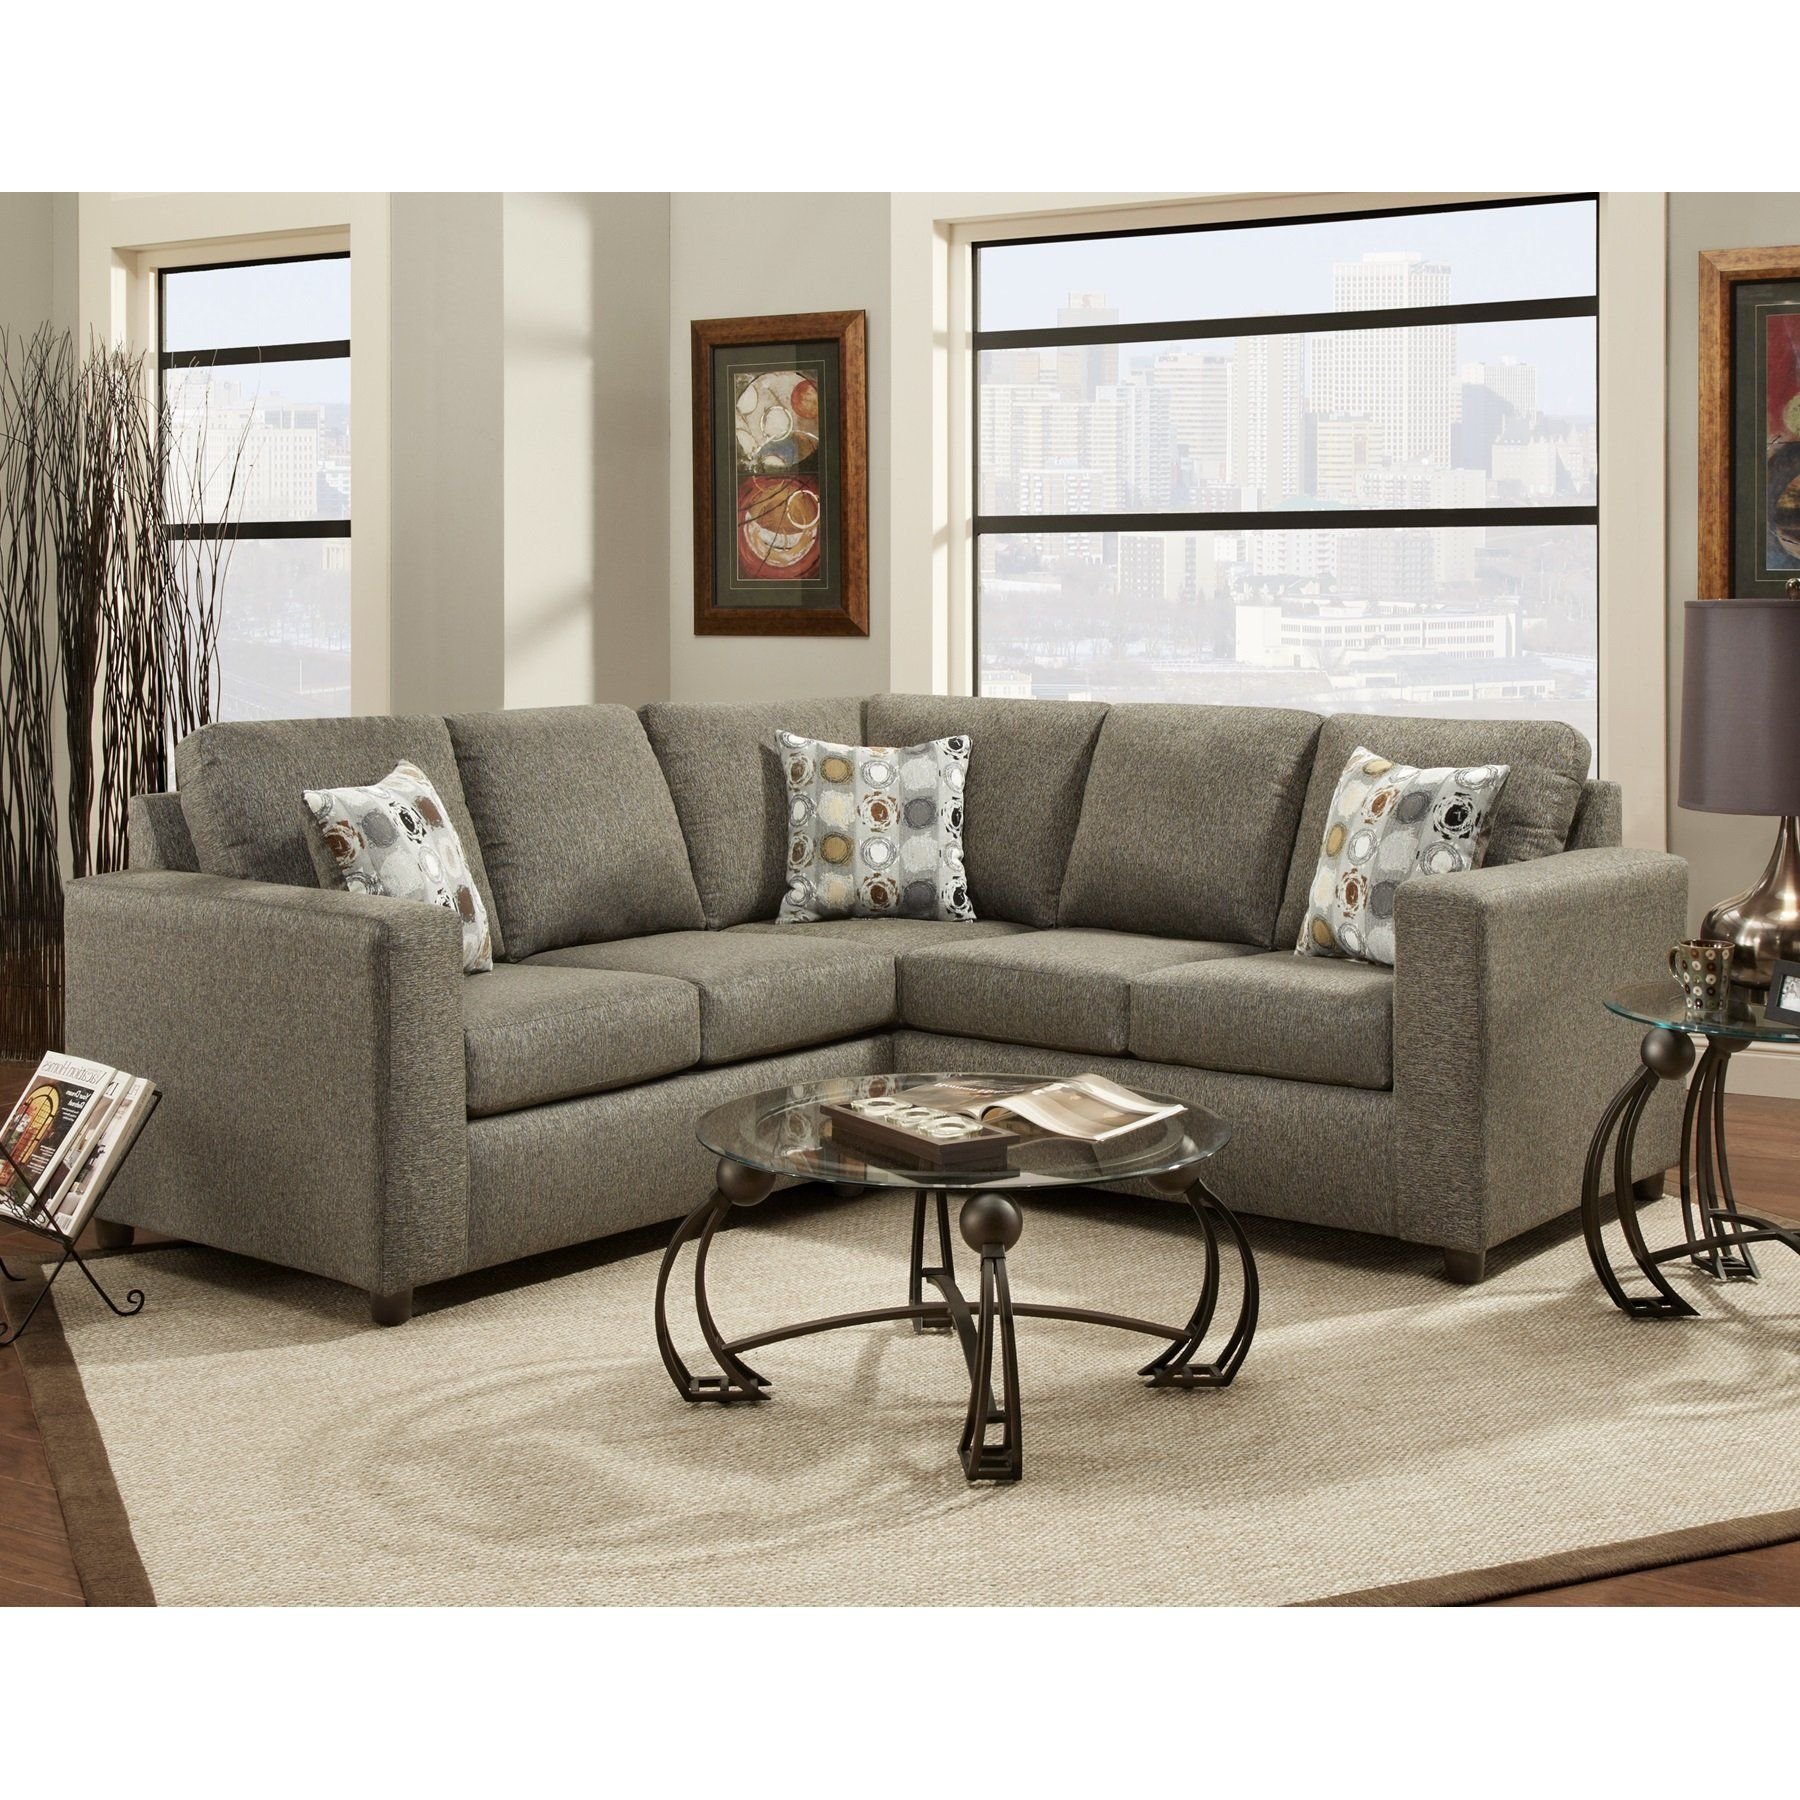 Vivid Onyx Fibric Sectional Sofa W 3 Pillows Made In Usa If You Are Looking For A Plac Affordable Furniture American Home Furniture Fabric Sectional Sofas